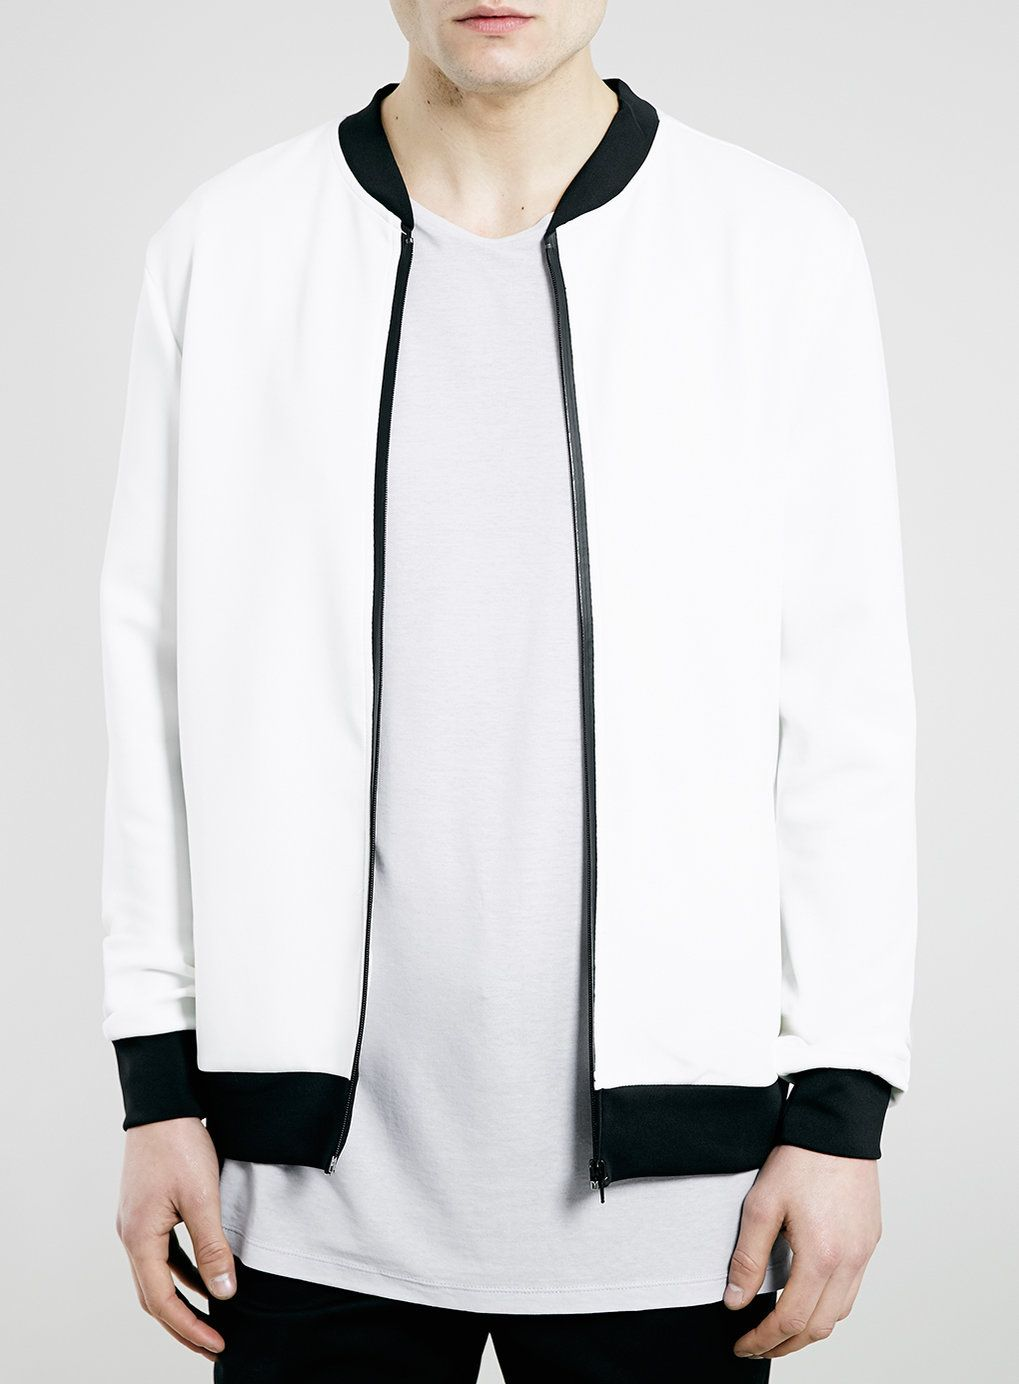 White/Black Tape Zip Technical Bomber Jacket | Men's jacket and ...